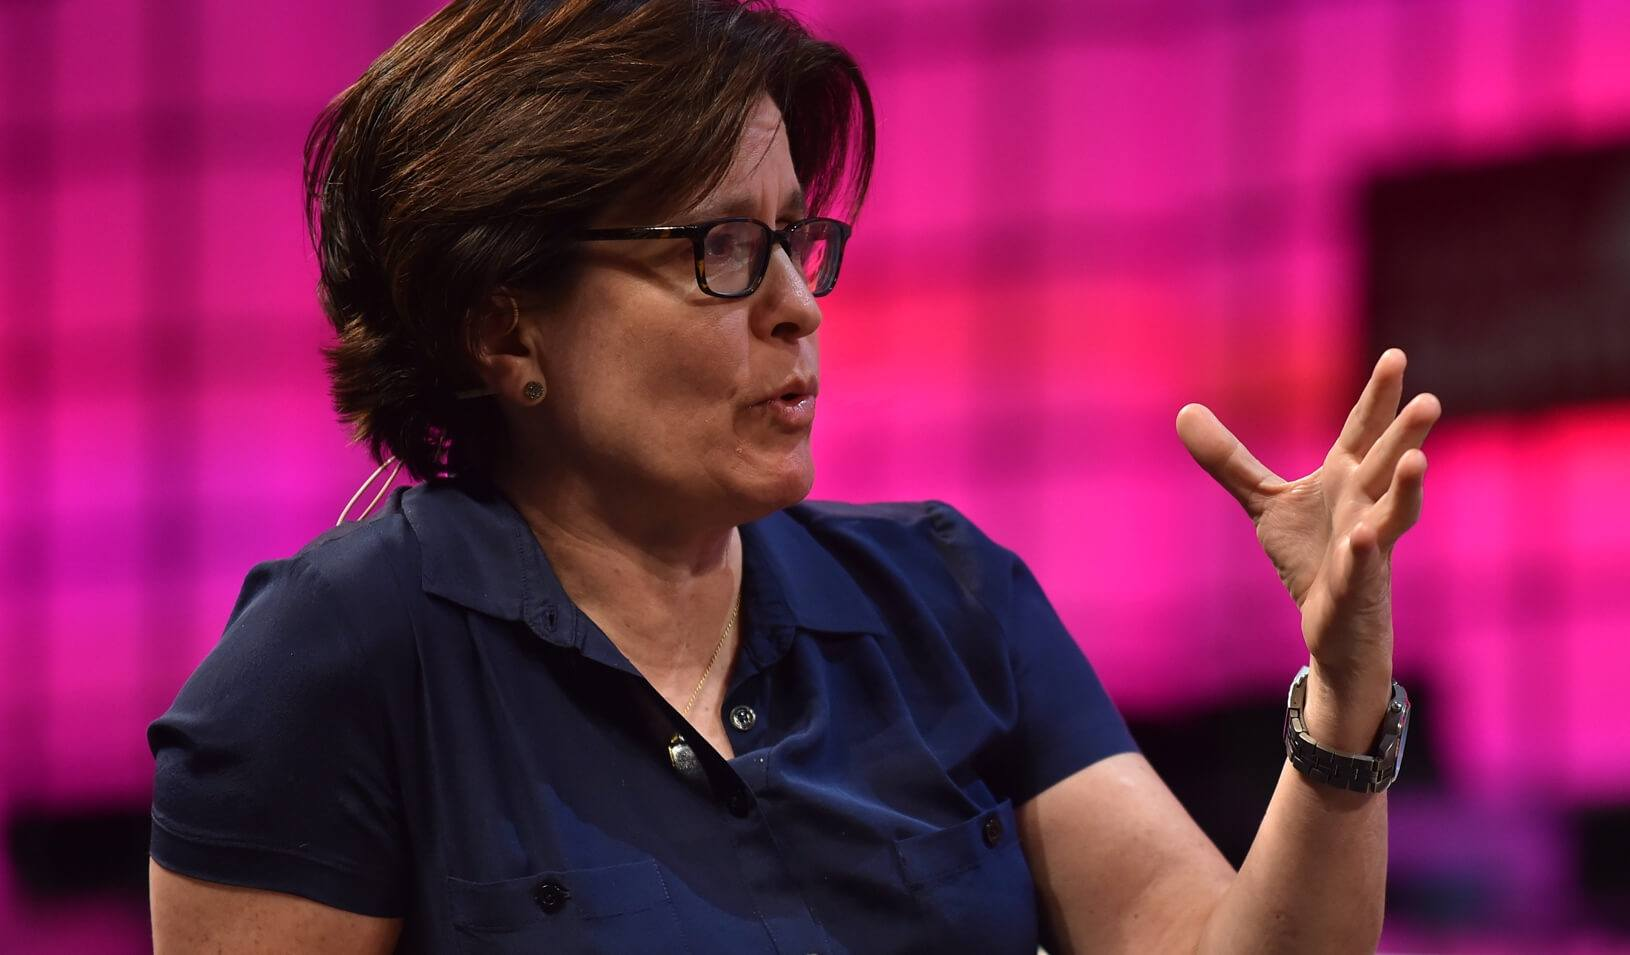 Kara Swisher: Be the Boss